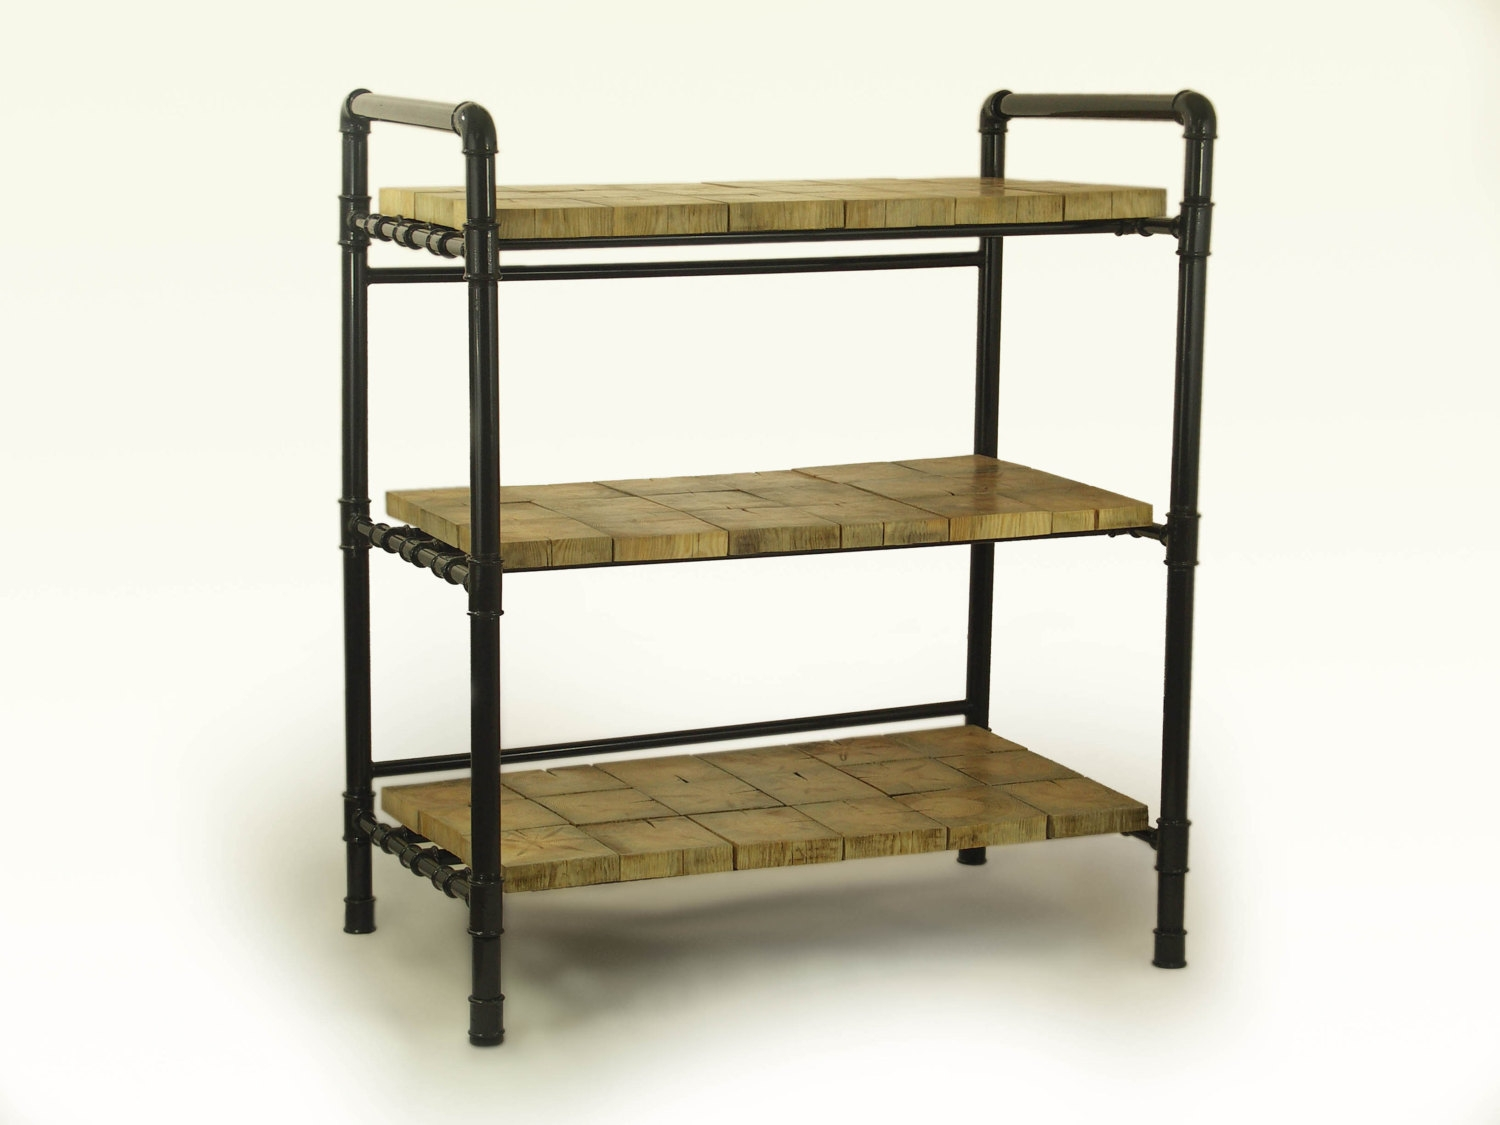 Design Wonderful Galvanised 4 Shelf Unit Galvanised Boltless Intended For Free Standing Shelving Units Wood (View 4 of 15)